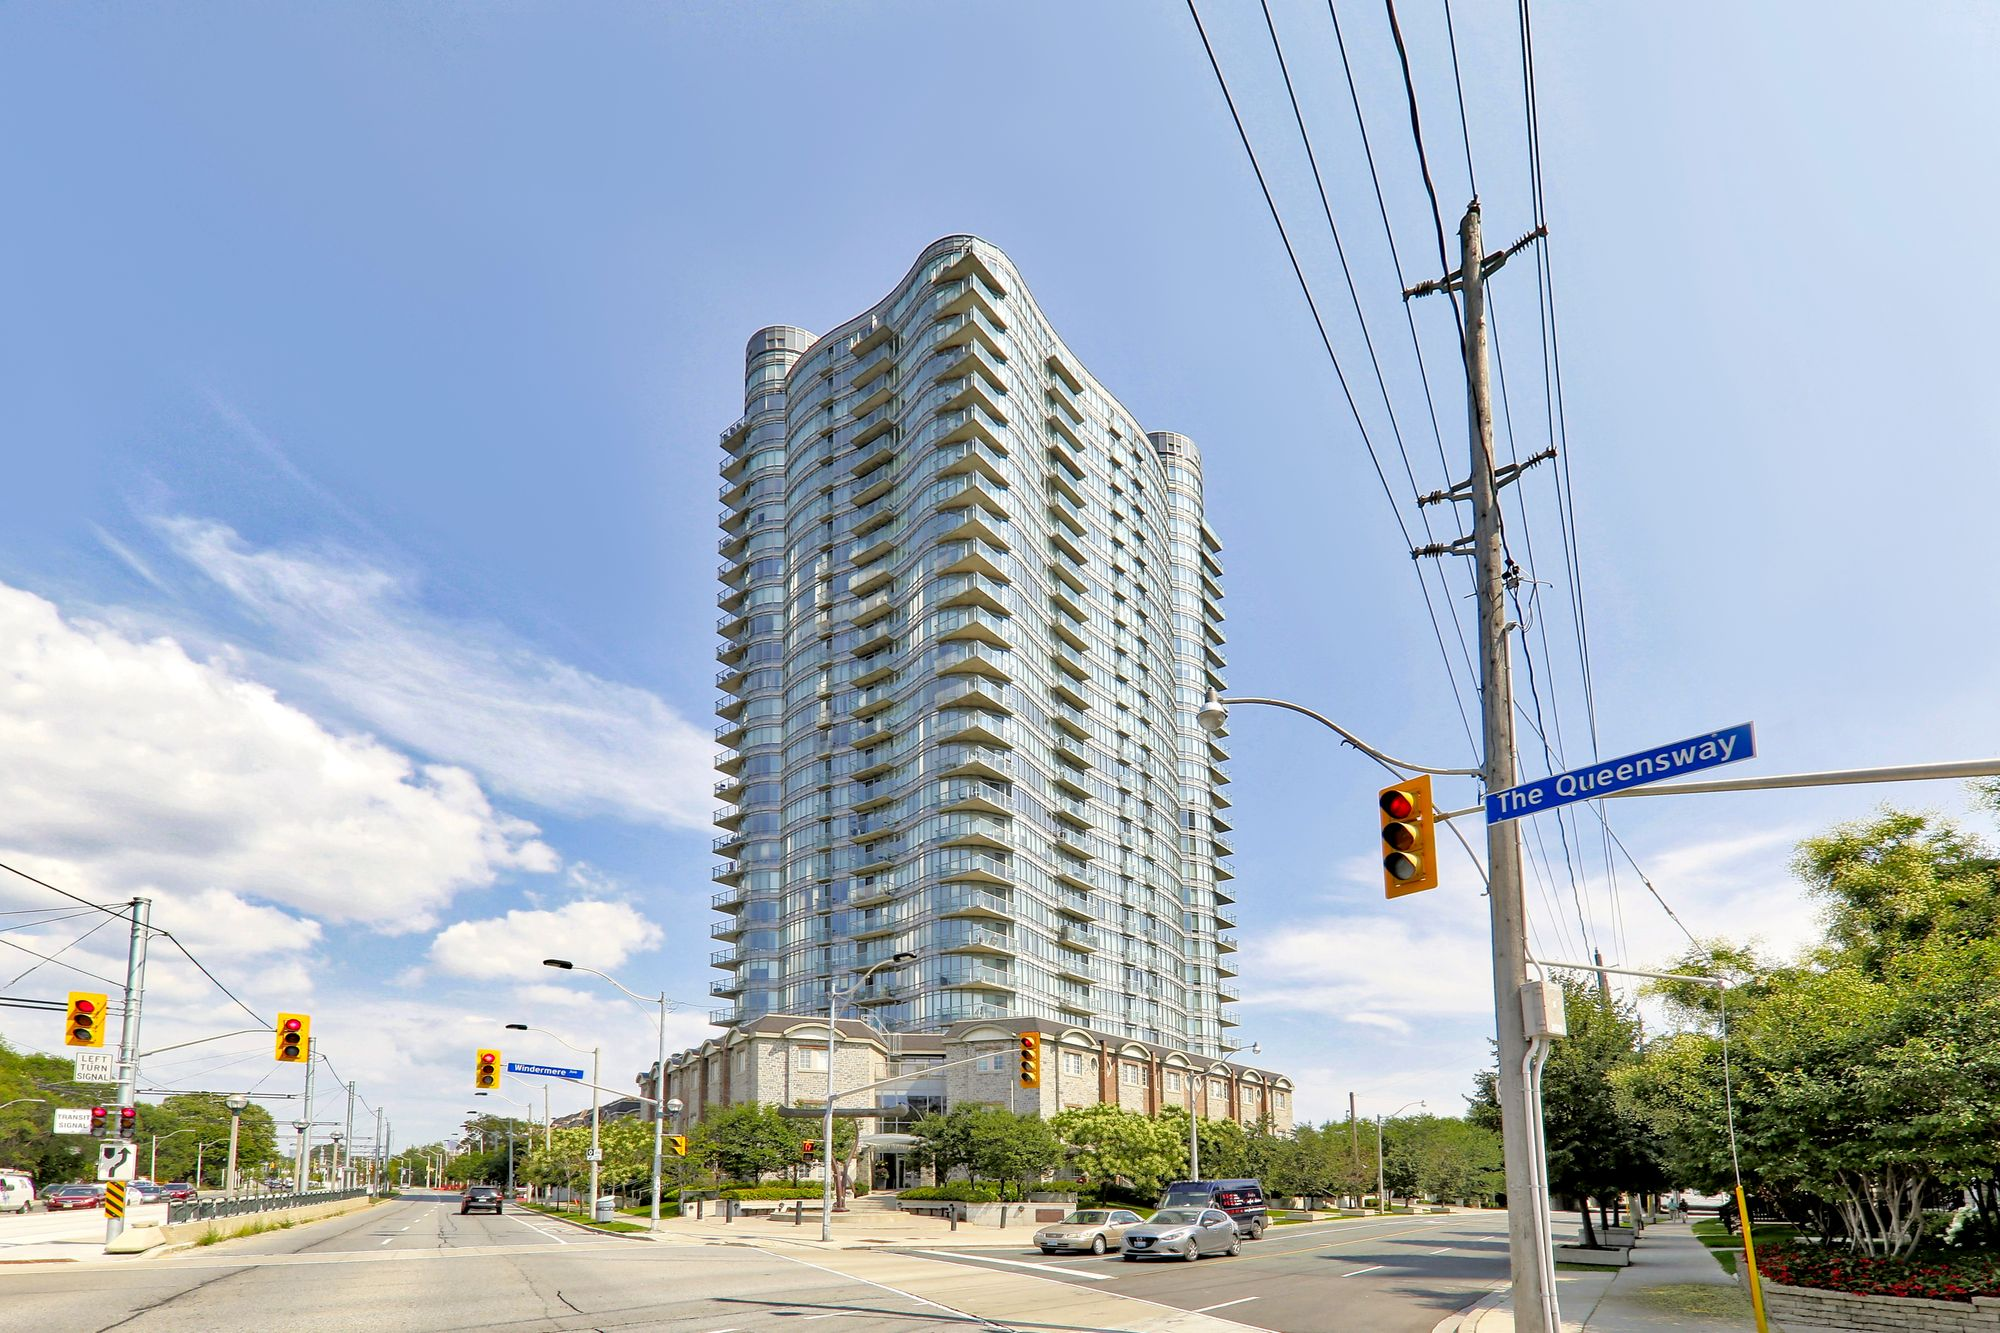 Windermere By The Lake at 15 Windermere Ave. This condo is located in  West End, Toronto - image #1 of 7 by Strata.ca